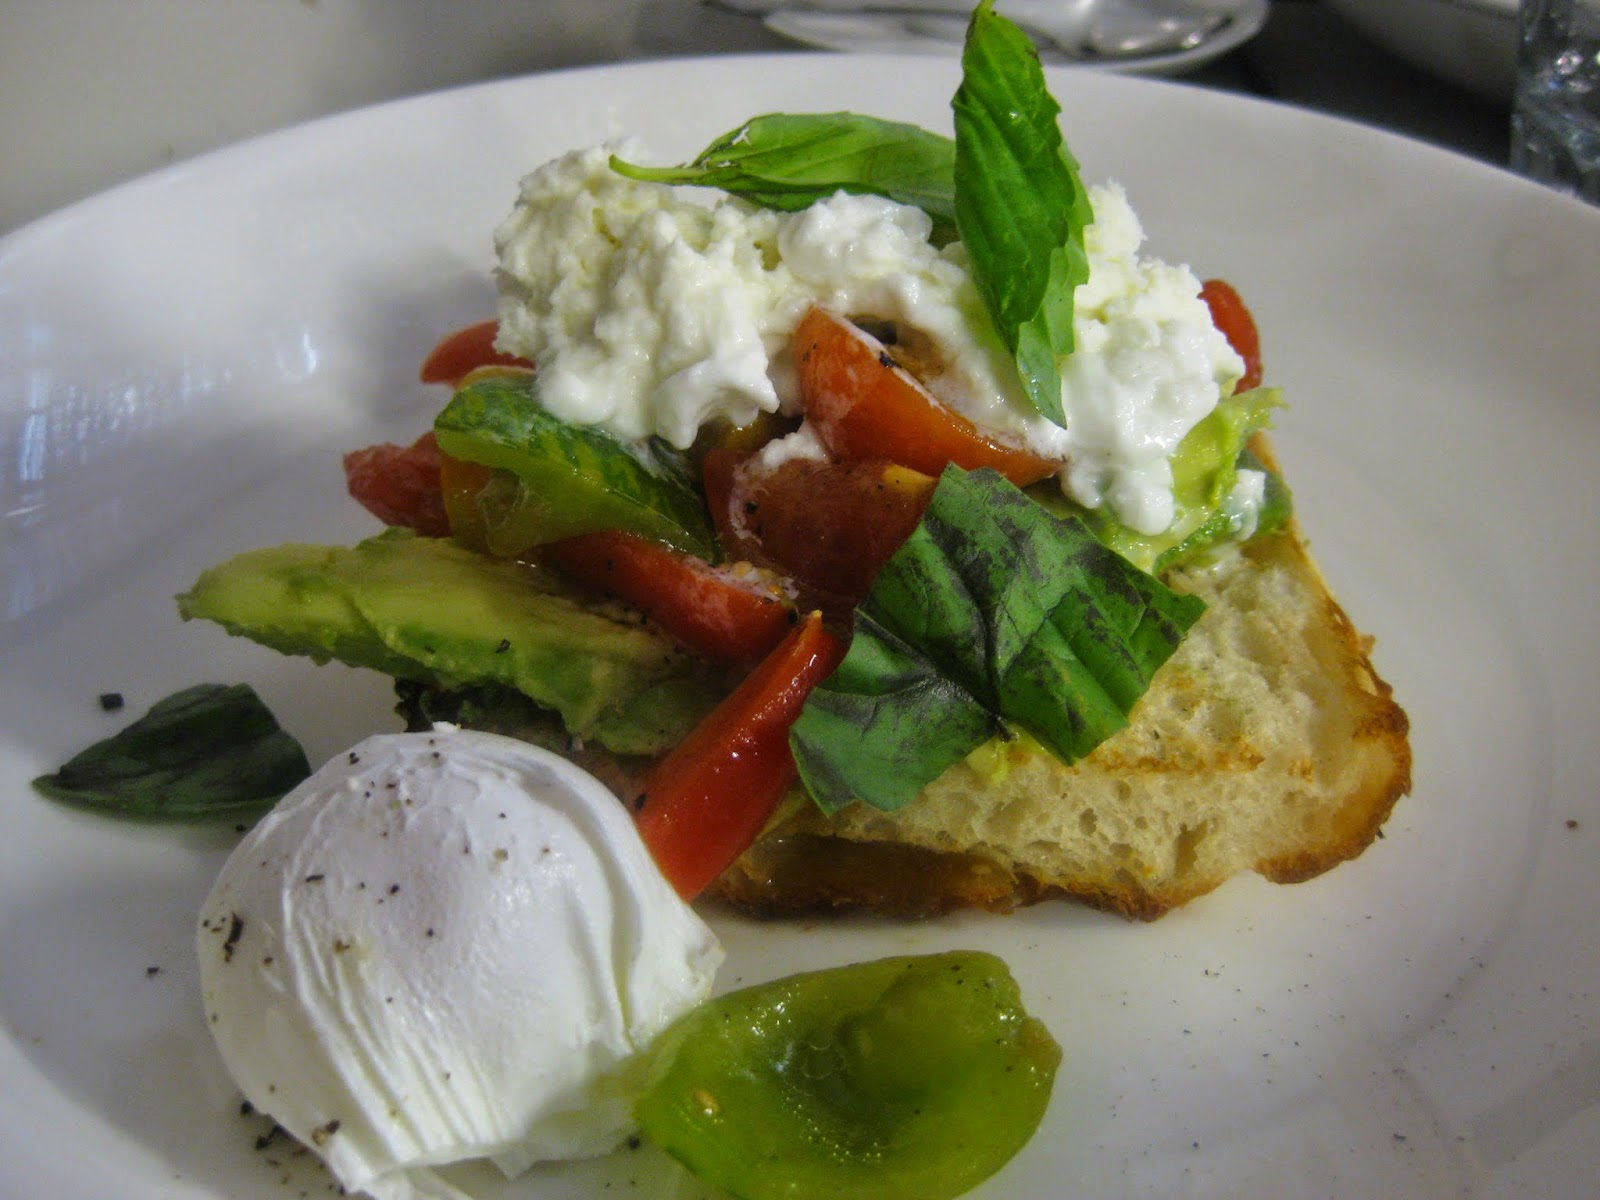 Cassie Cakes Review of Plenty poached egg and avocado